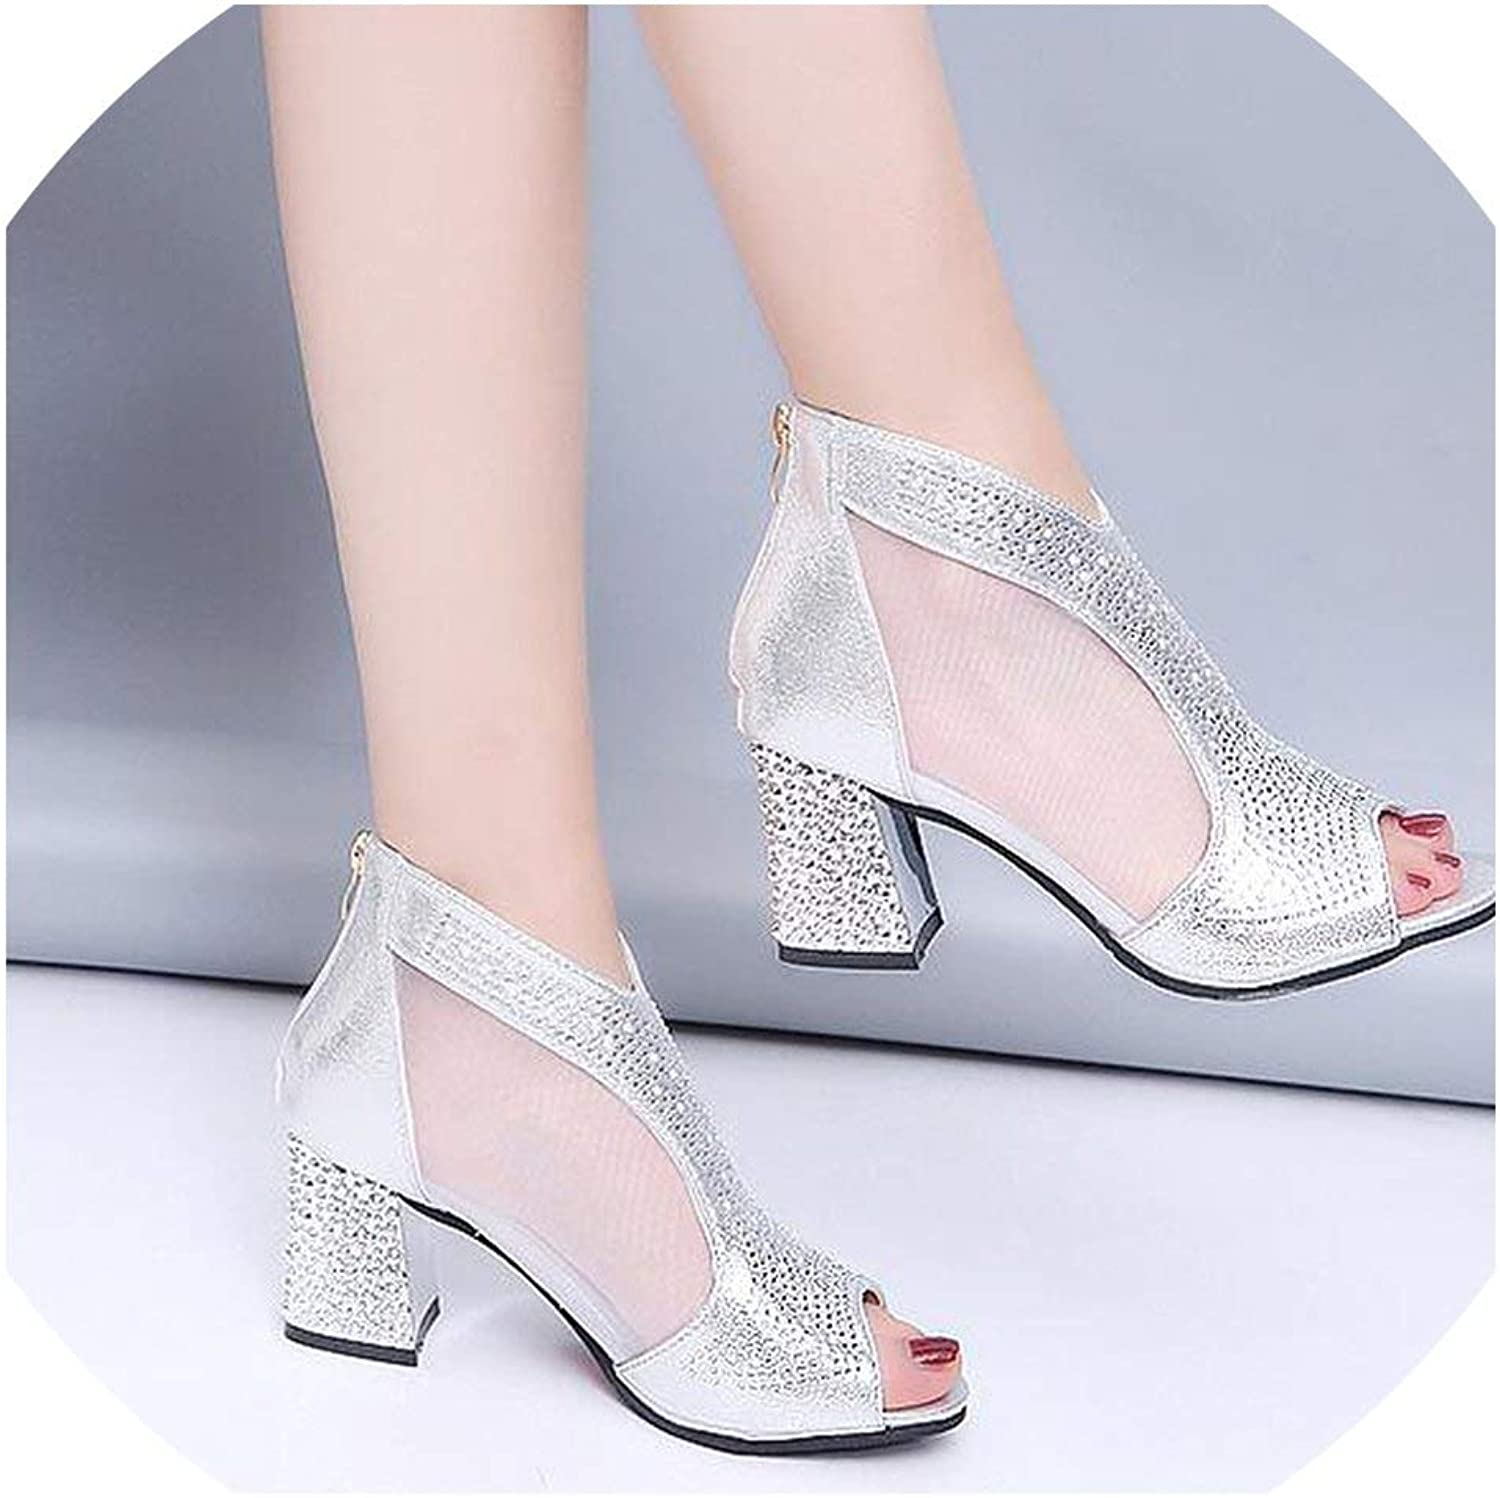 Women Sandals High Heels Diamond Square Heel Women shoes Wedding shoes Leather Sandalia